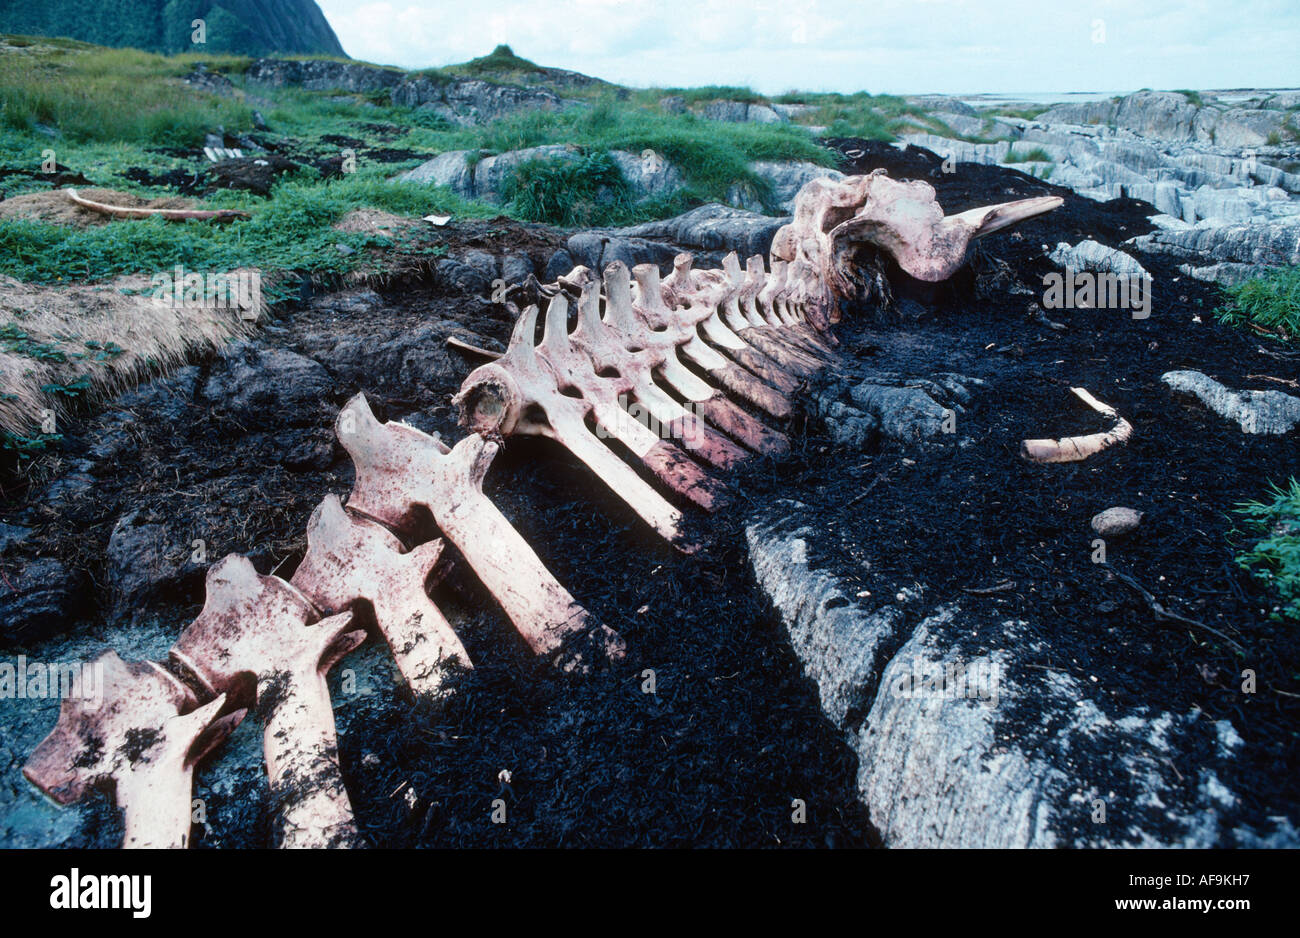 Spermaceti Whale High Resolution Stock Photography And Images Alamy